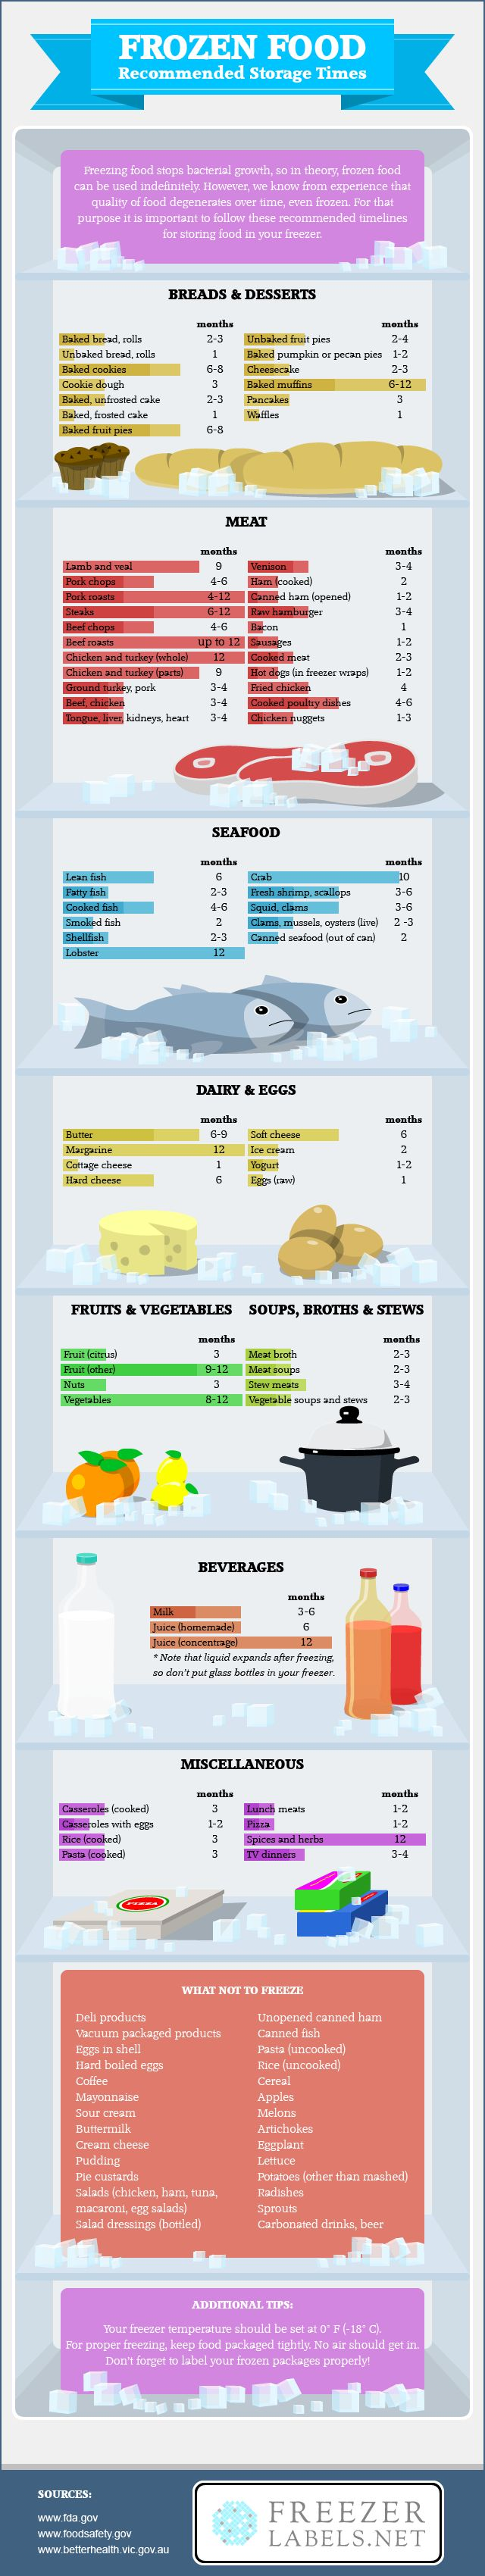 Frozen Food Recommended Storage Times #infographic ~ Visualistan